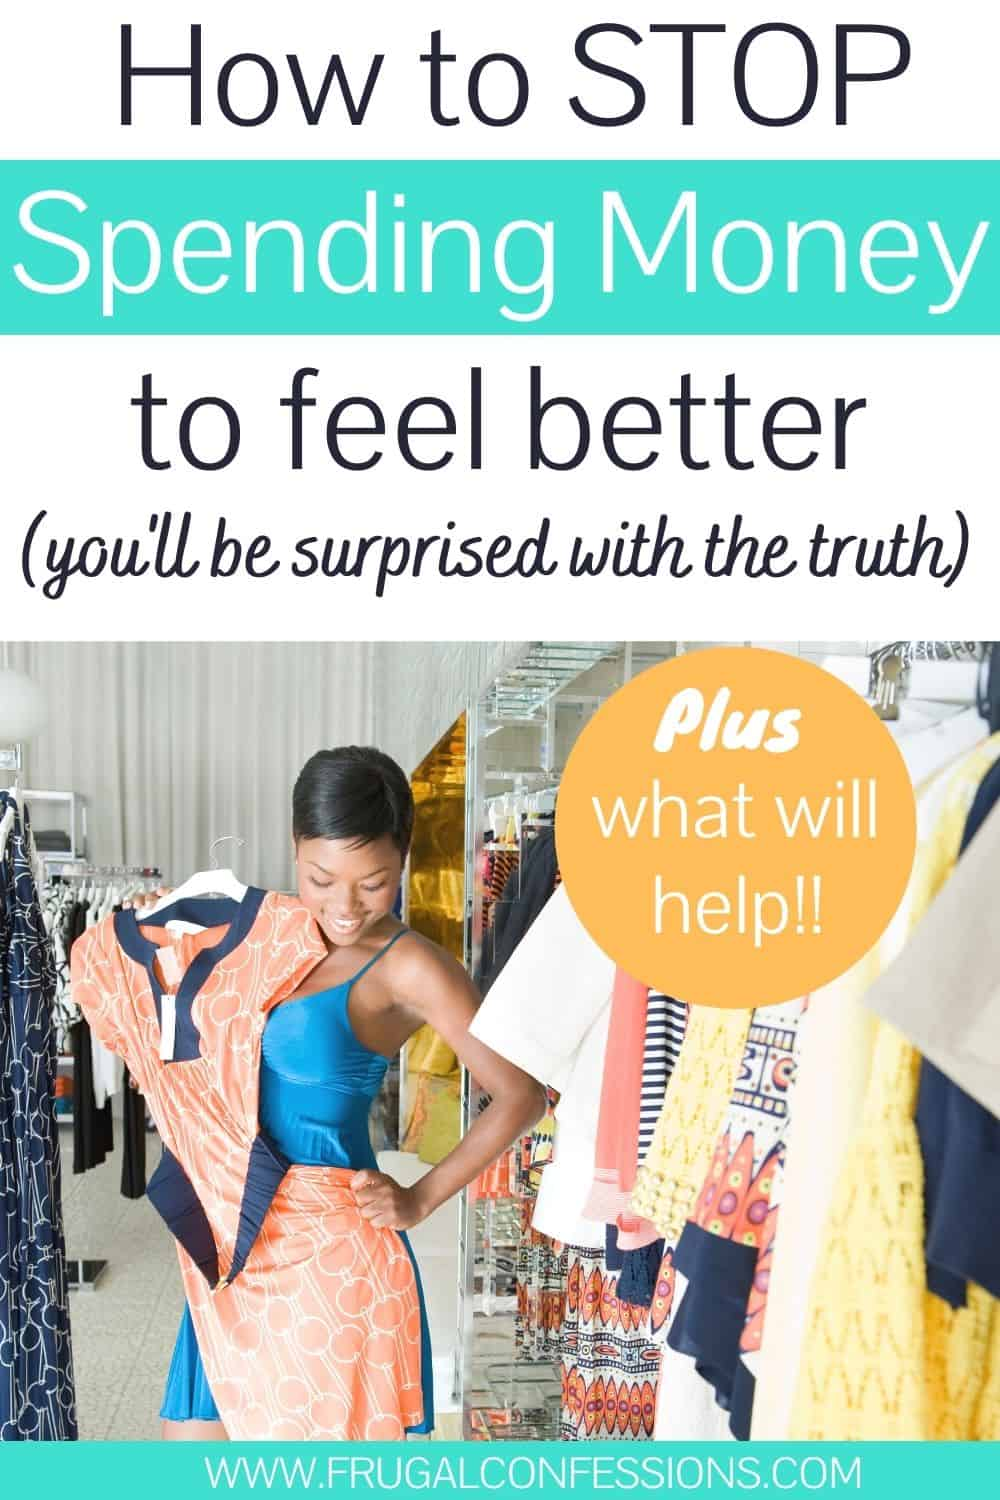 """screenshot of woman trying on clothes at store, text overlay """"how to stop spending money to make you feel better - plus what will help"""""""